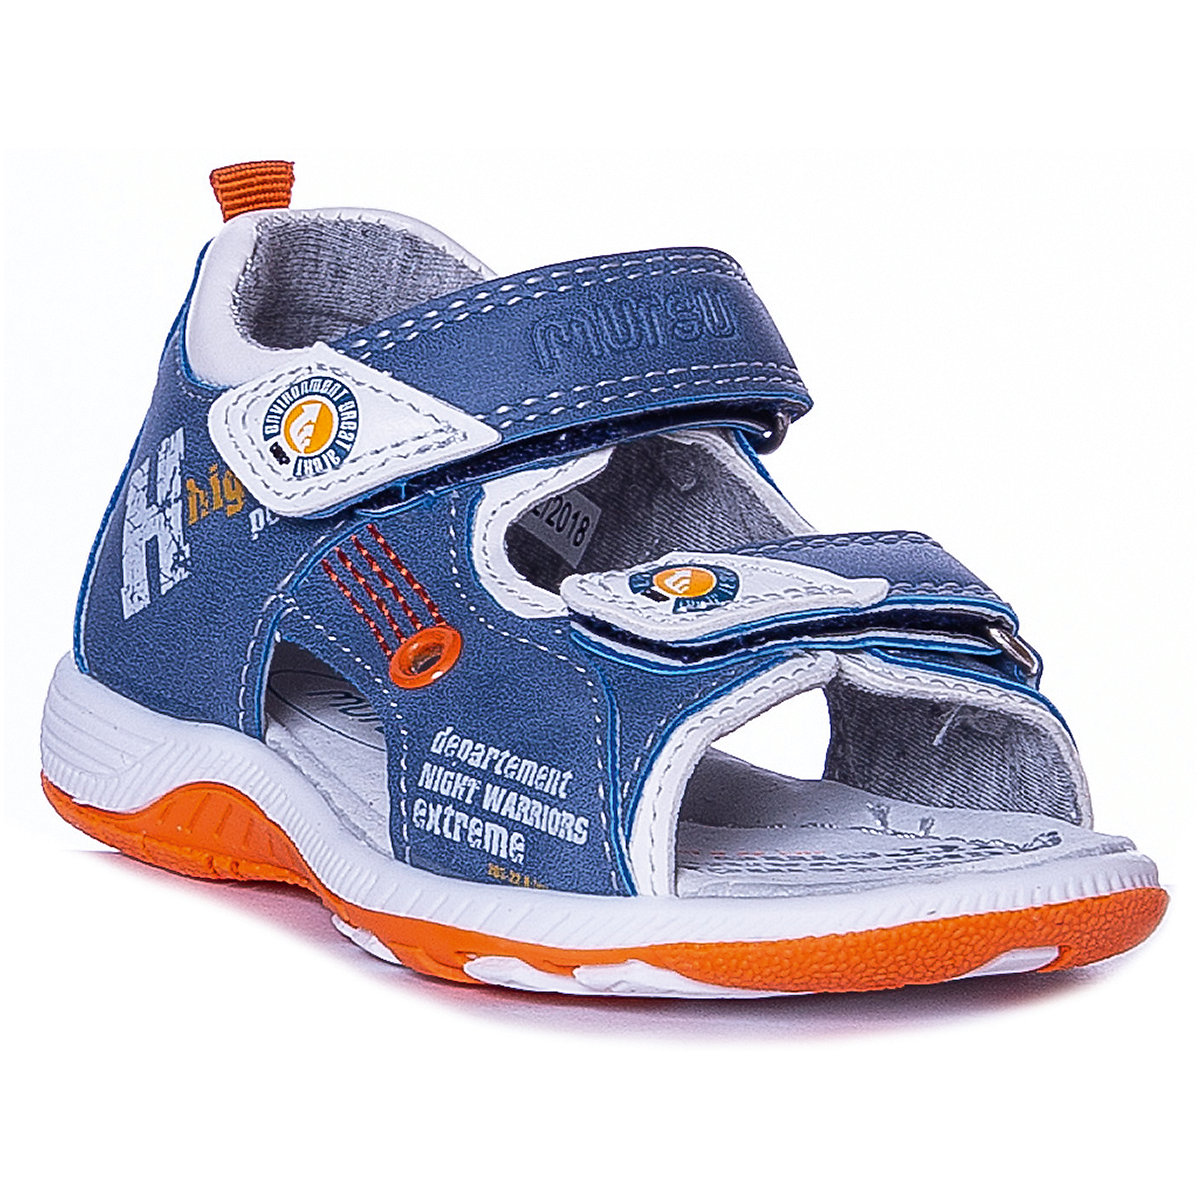 MURSU Sandals 10612167 children's shoes comfortable and light girls and boys sandals adidas af3921 sports and entertainment for boys